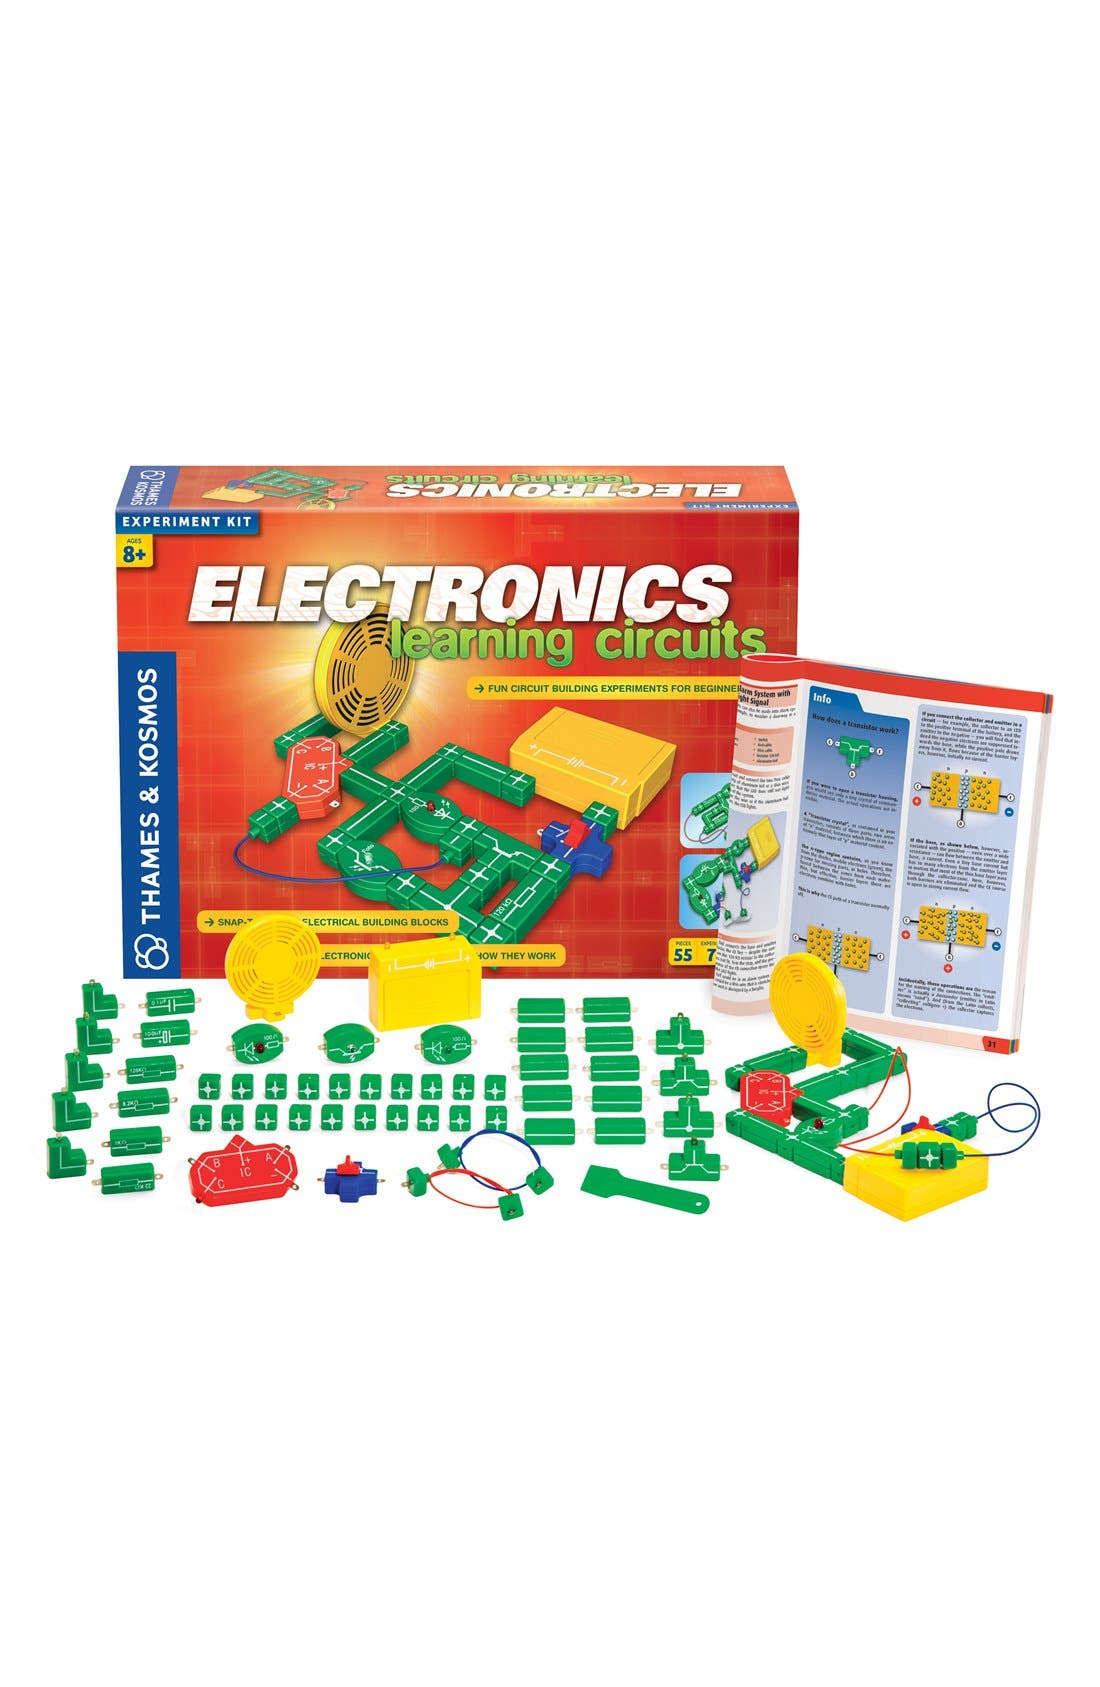 Thames & Kosmos 'Electronics Learning Circuits' Experiment Kit